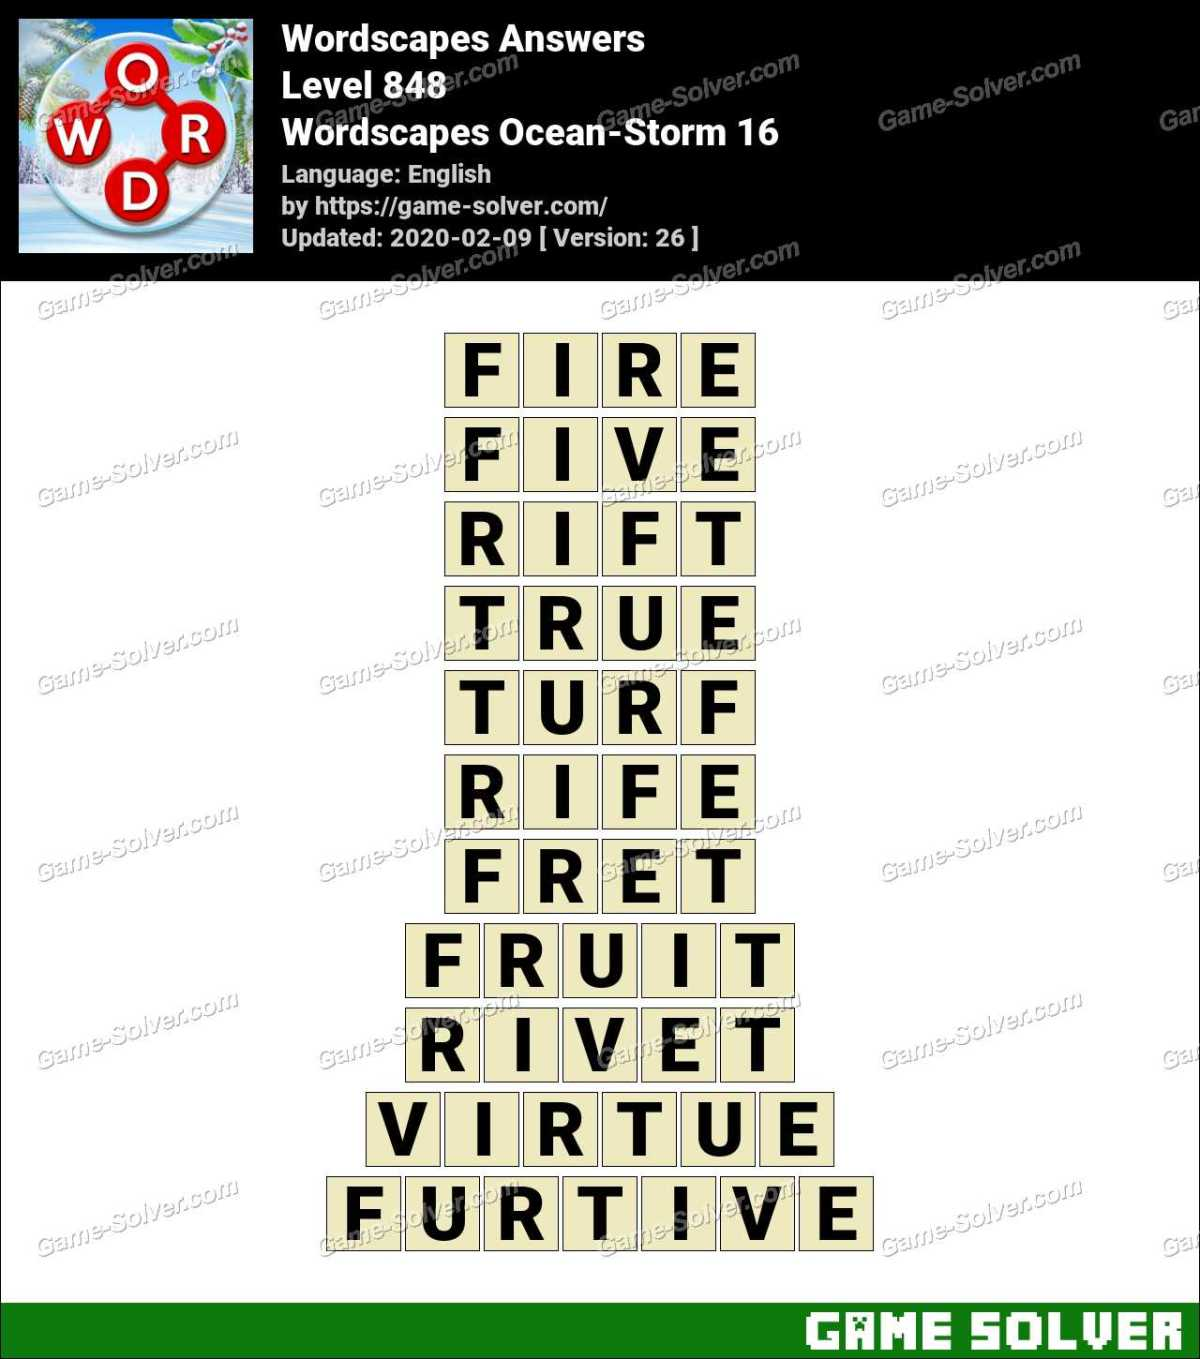 Wordscapes Ocean-Storm 16 Answers